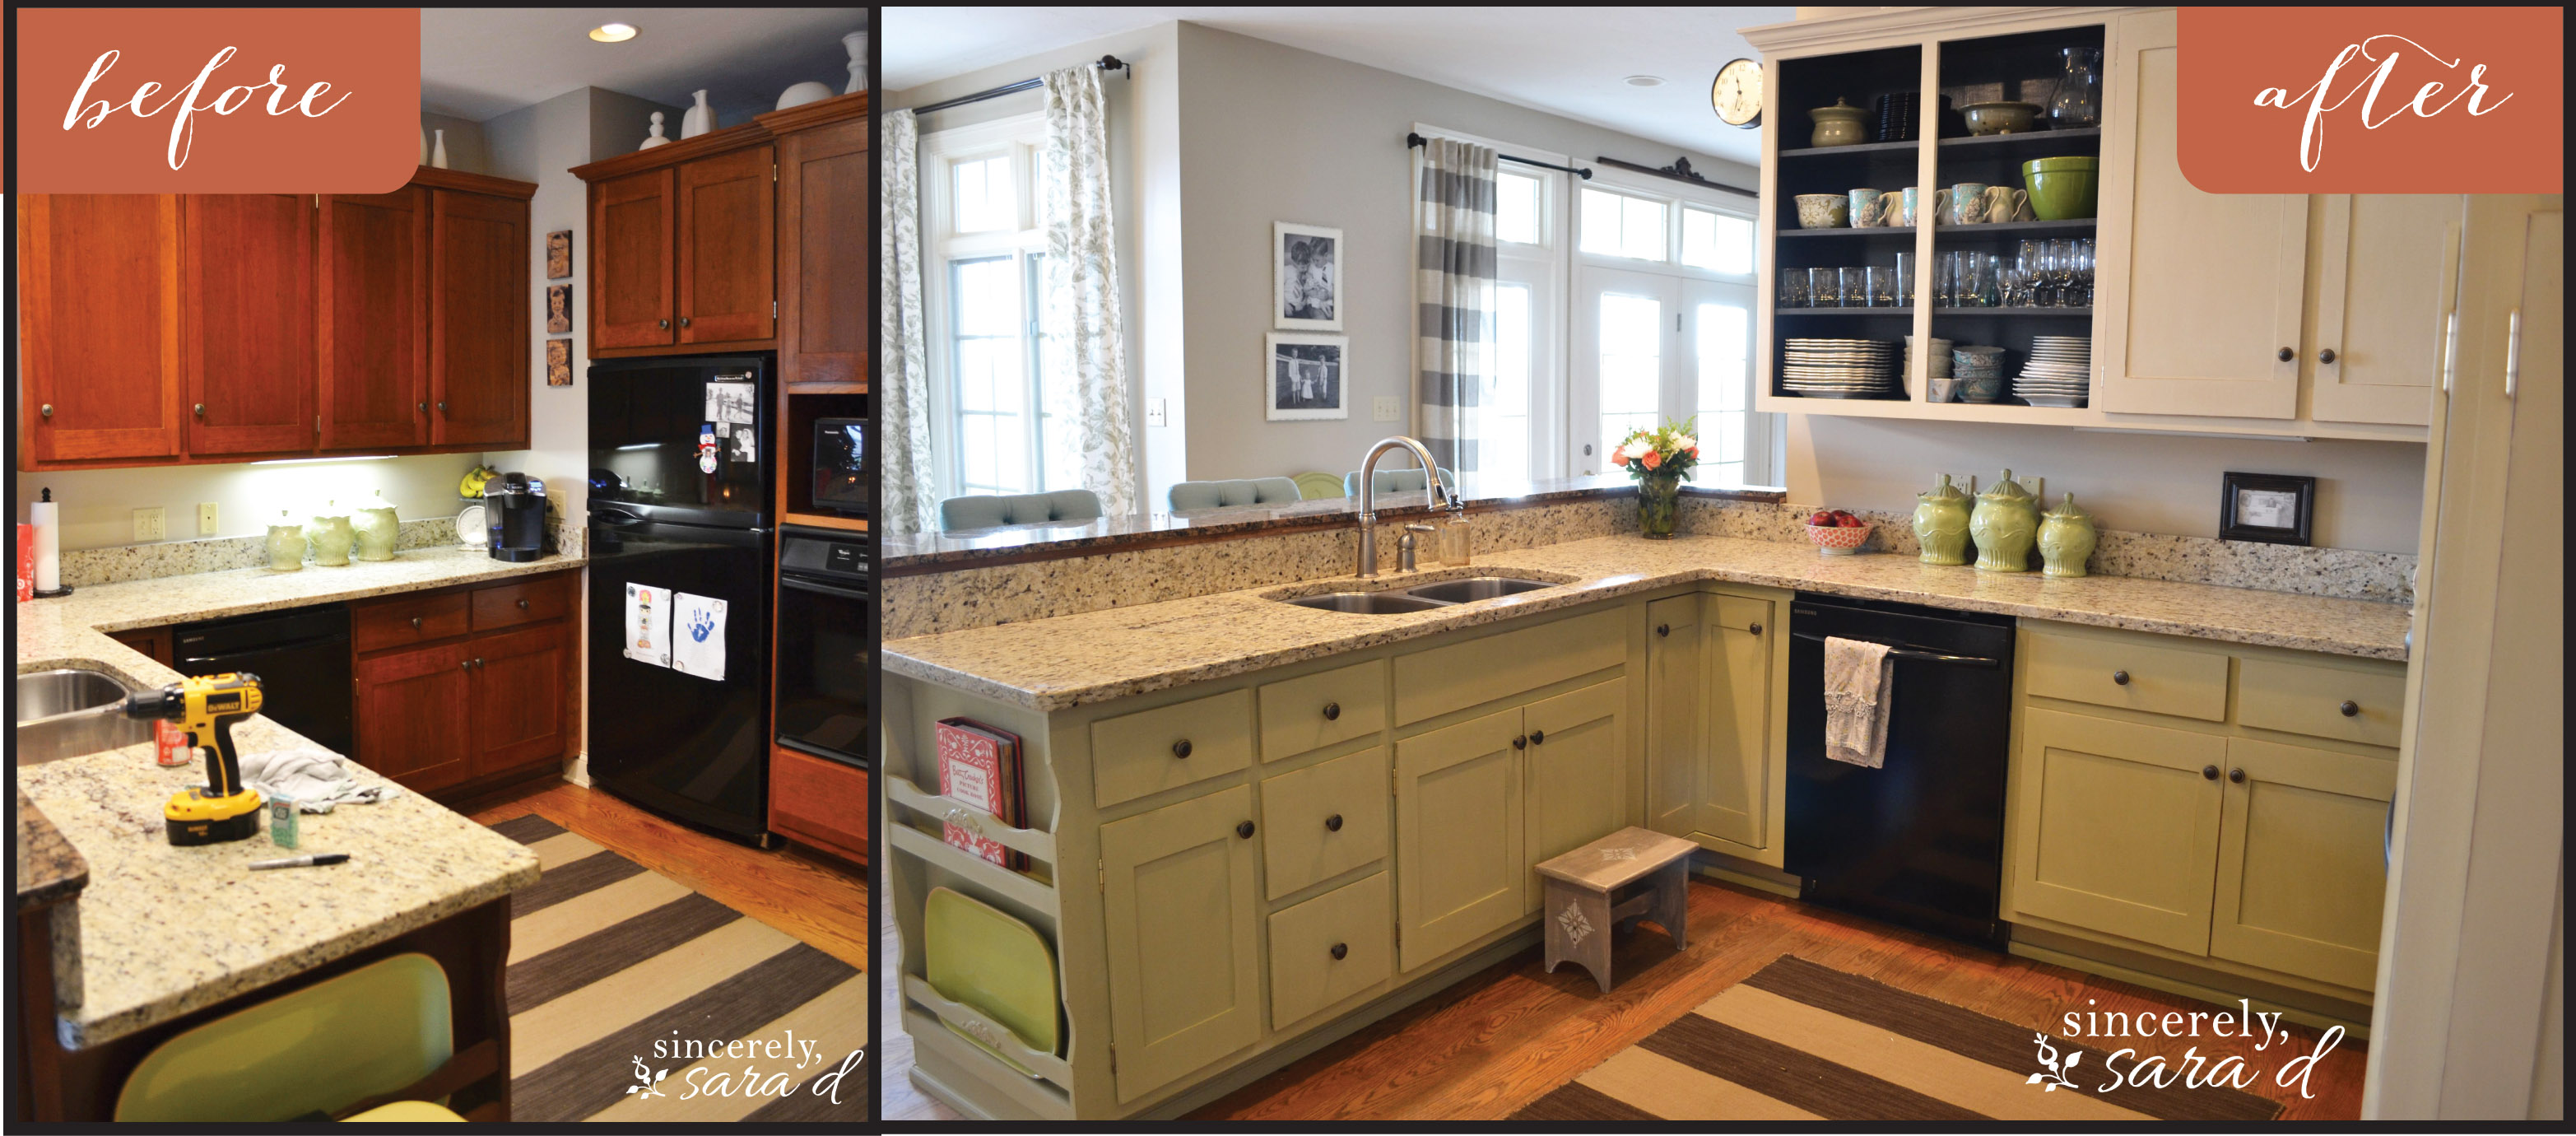 Diy Painting Kitchen Cabinets Blog